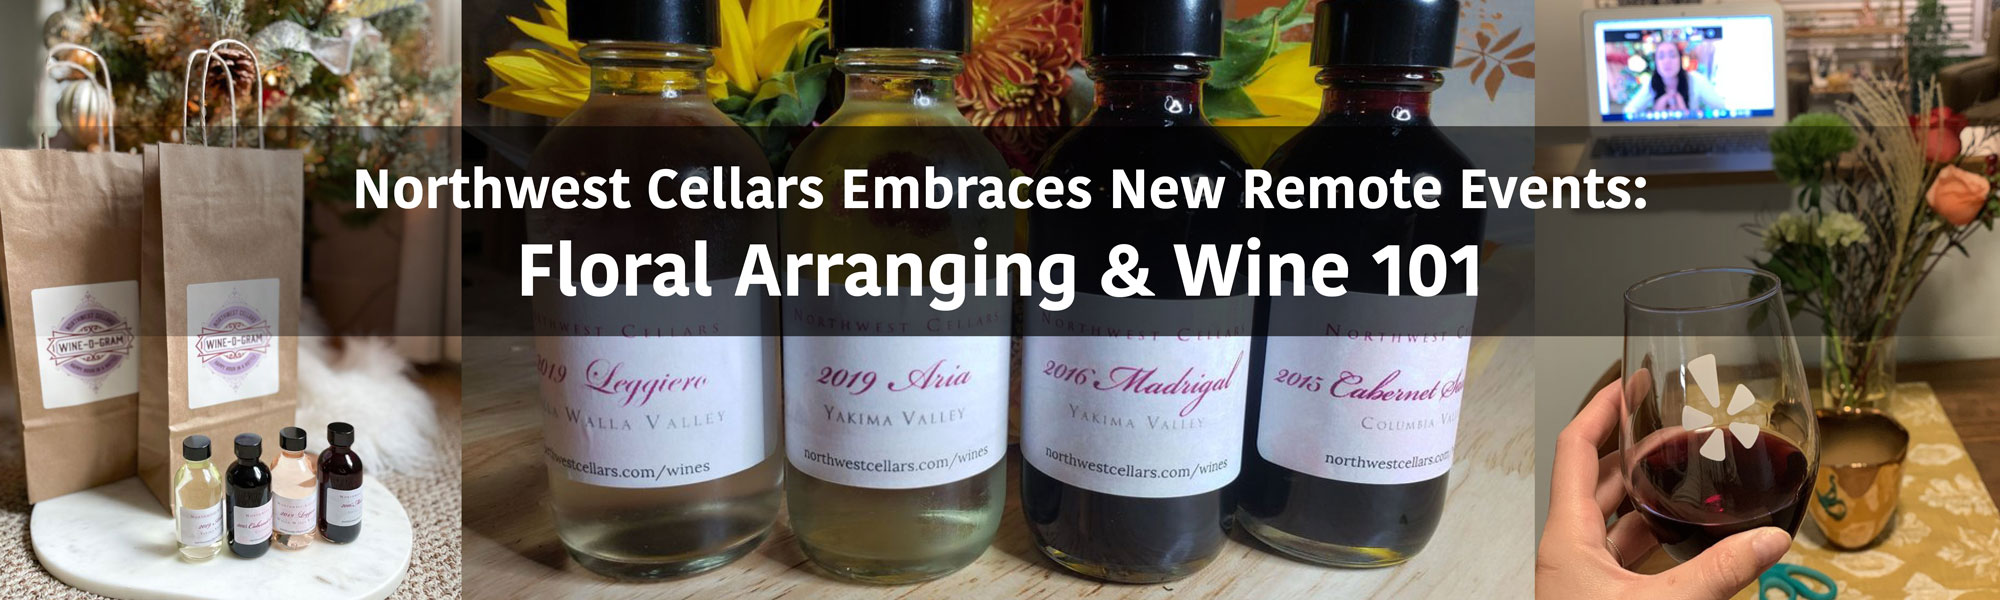 Wine & Flowers: NW Cellars Embraces New Remote Events